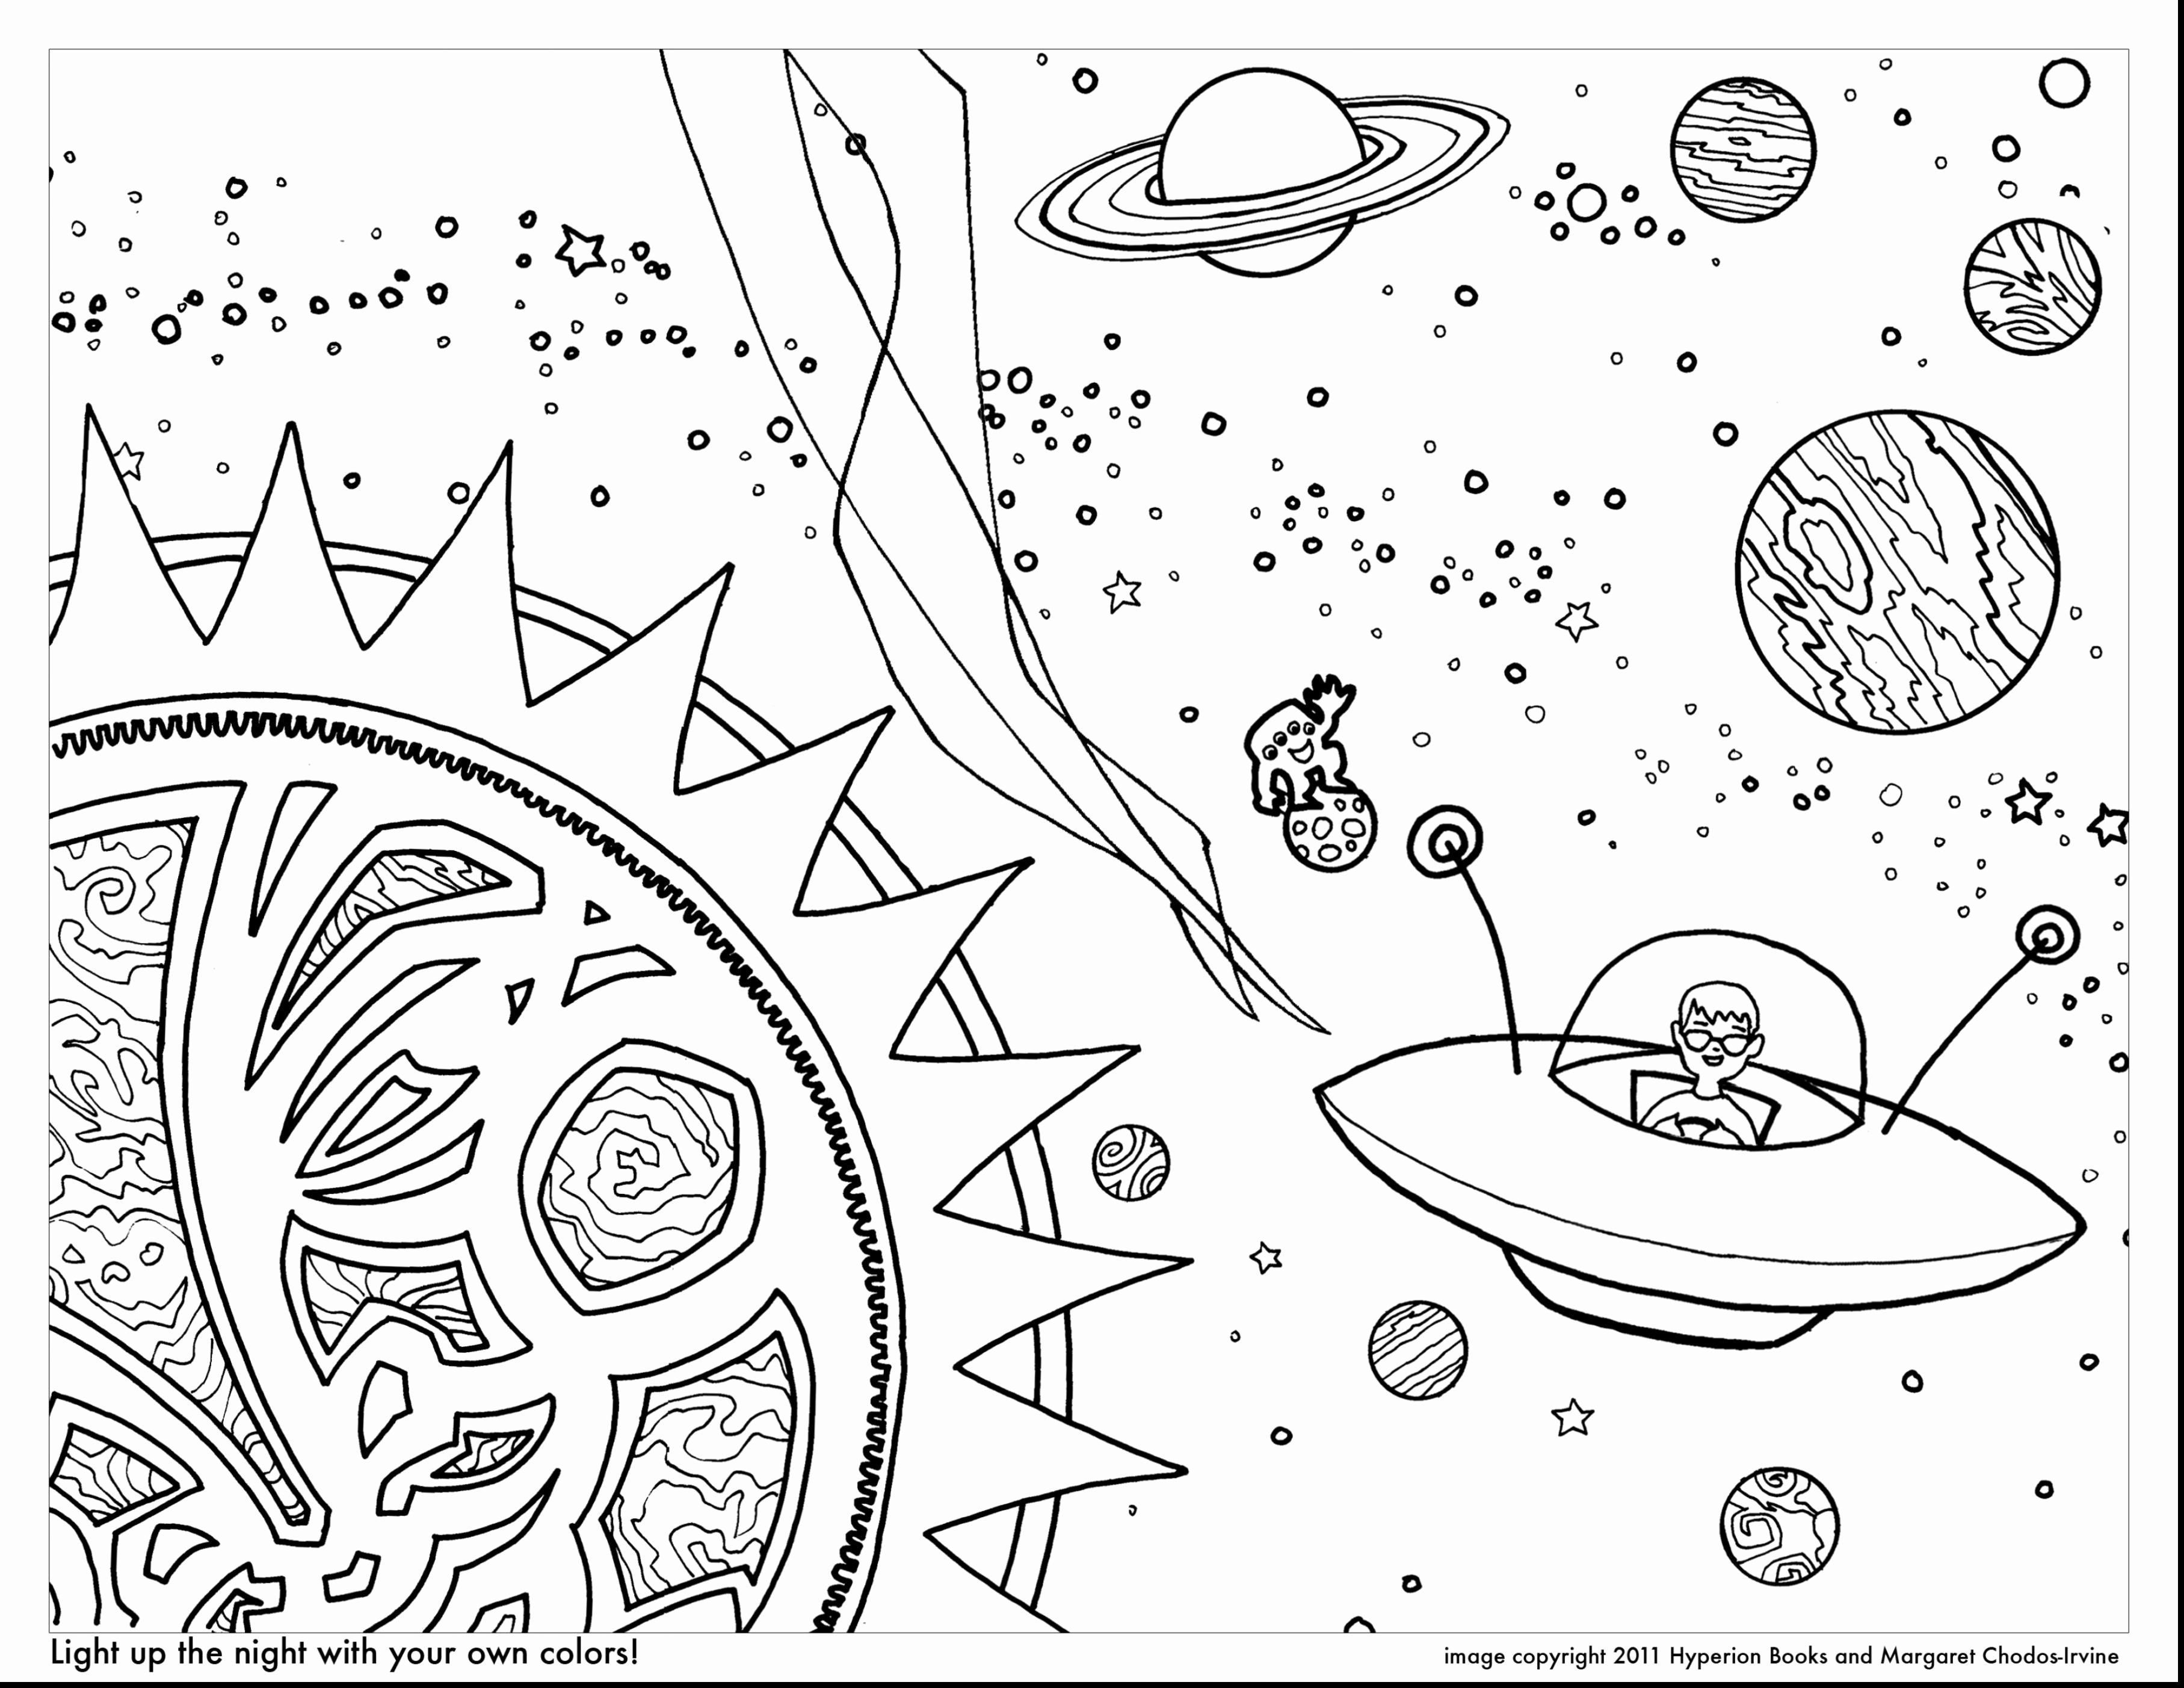 Coloring Activities For 4 Year Olds Inspirational Coloring Ideas Marvelous Free Coloring Pages F Space Coloring Pages Bird Coloring Pages Planet Coloring Pages